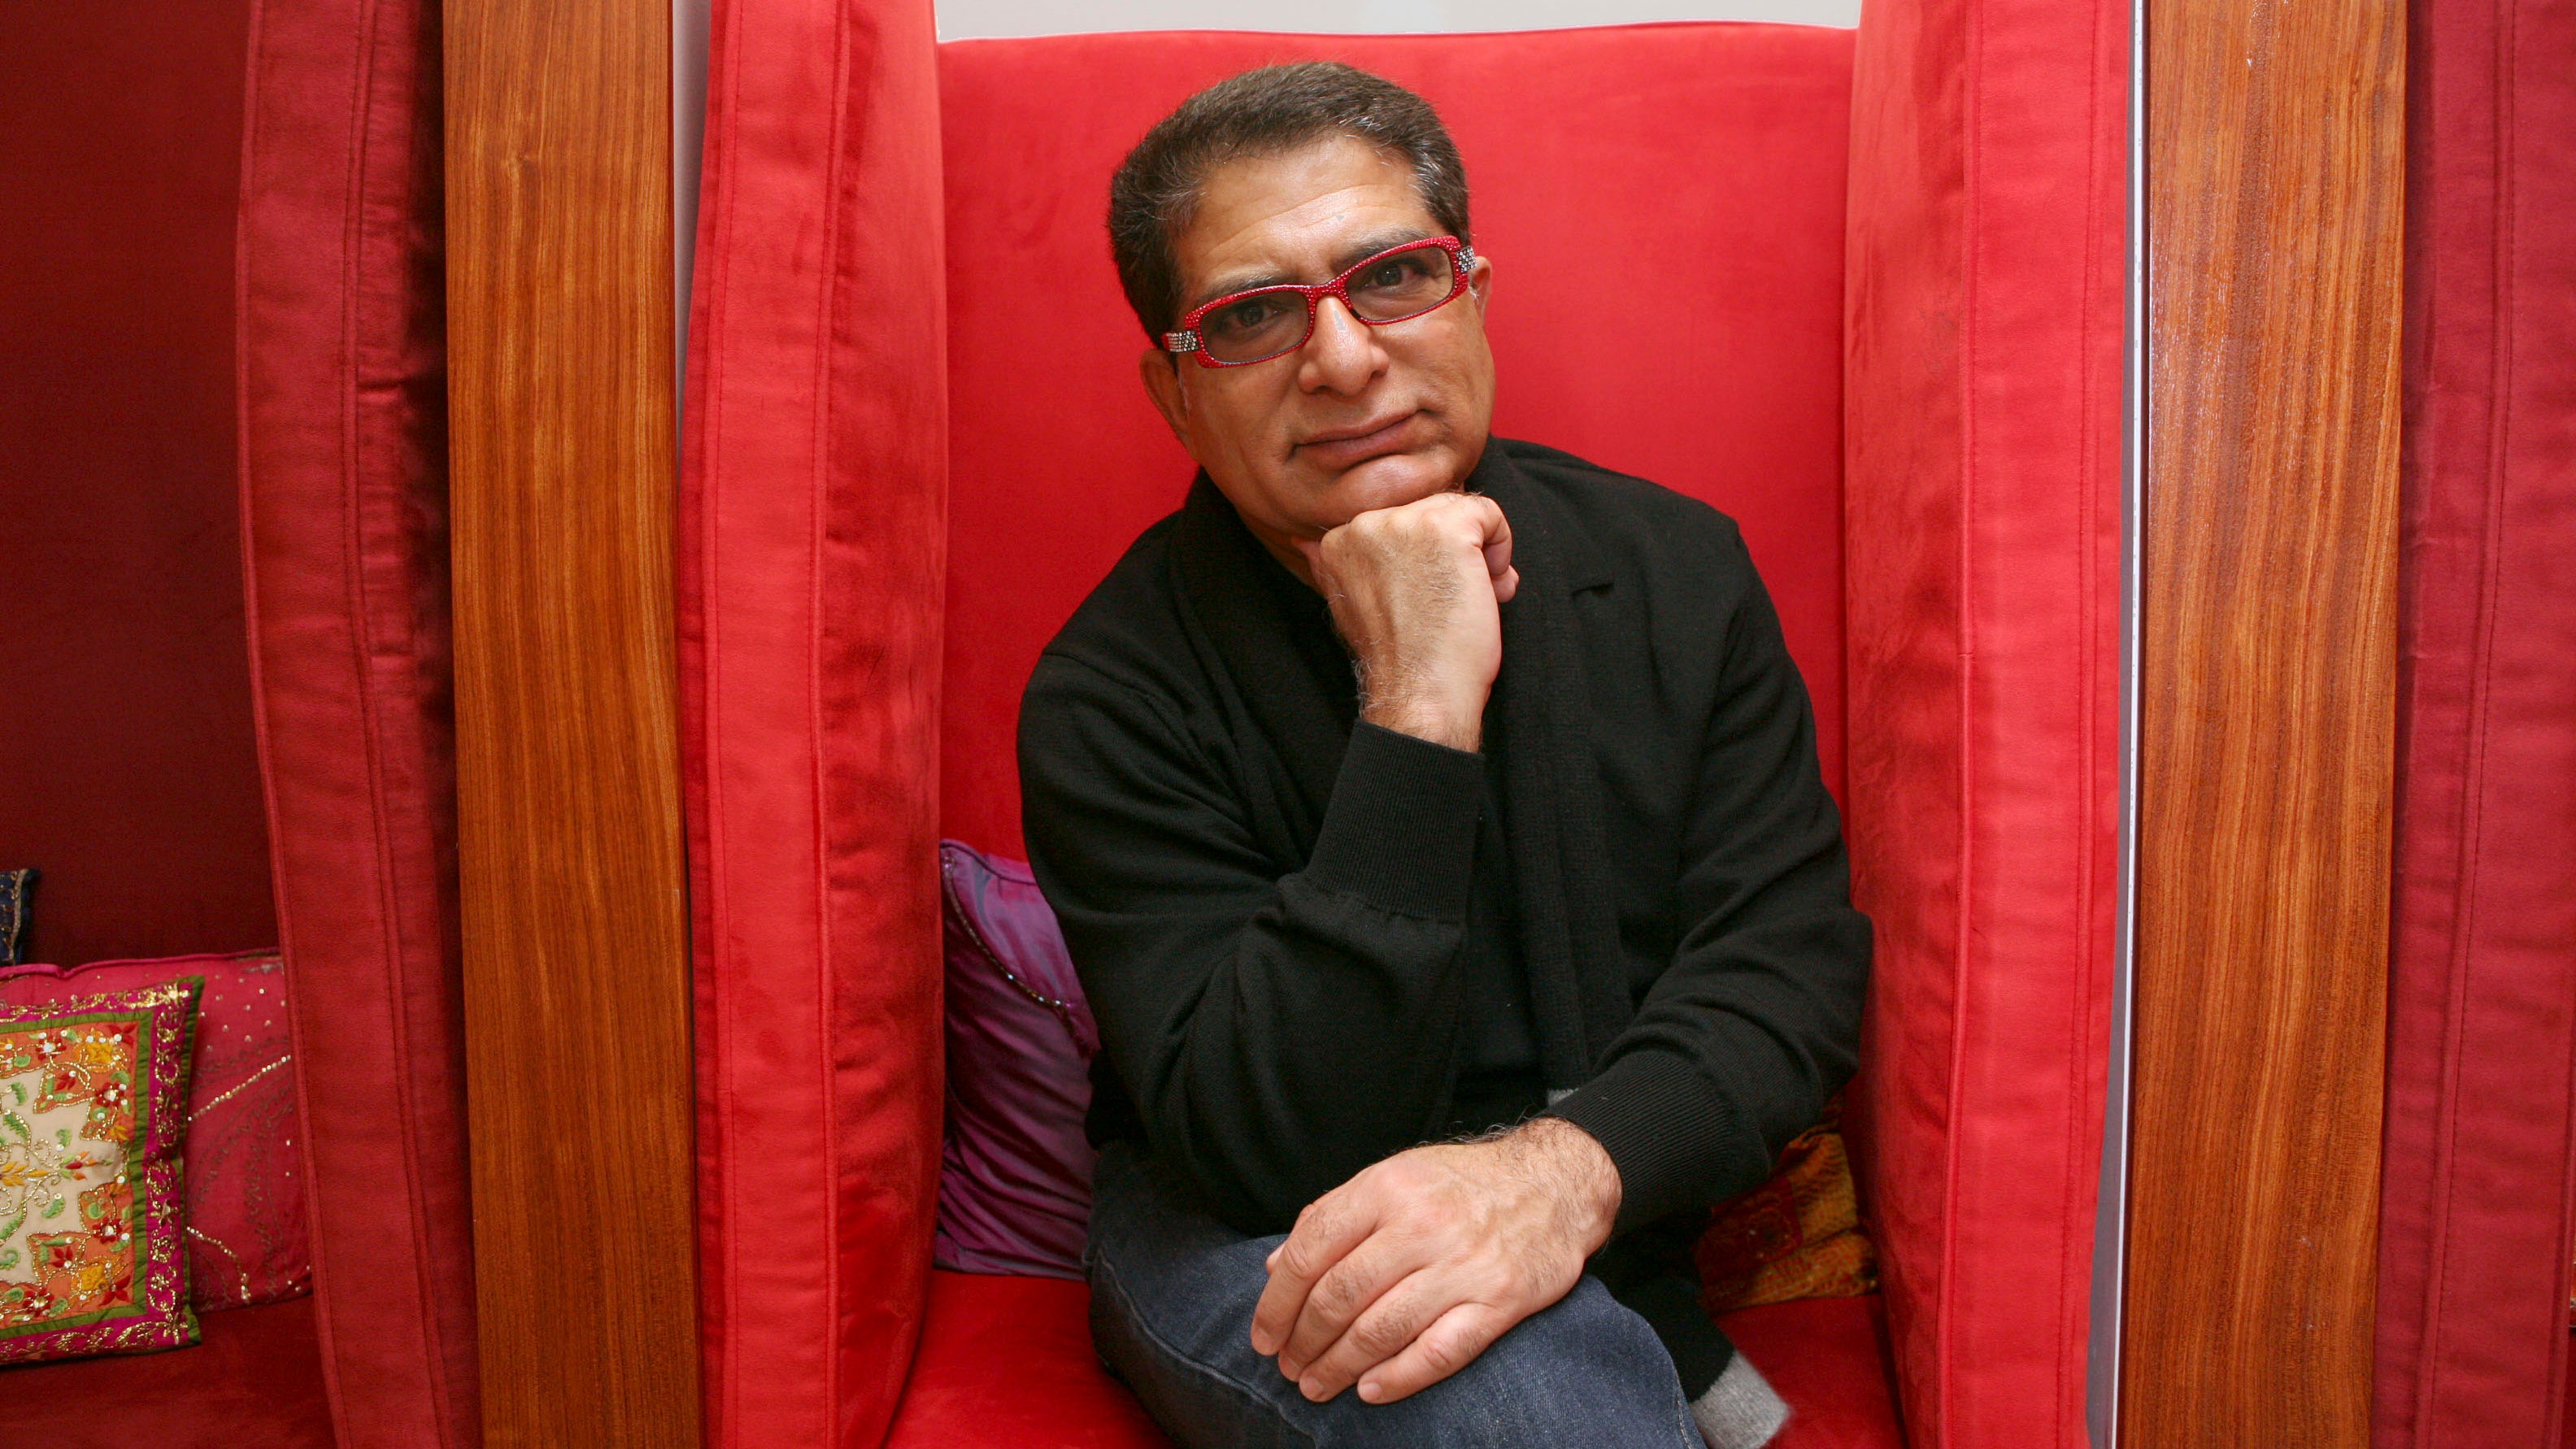 Deepak Chopra Thinks Stomach Bacteria Listens to Your Thoughts